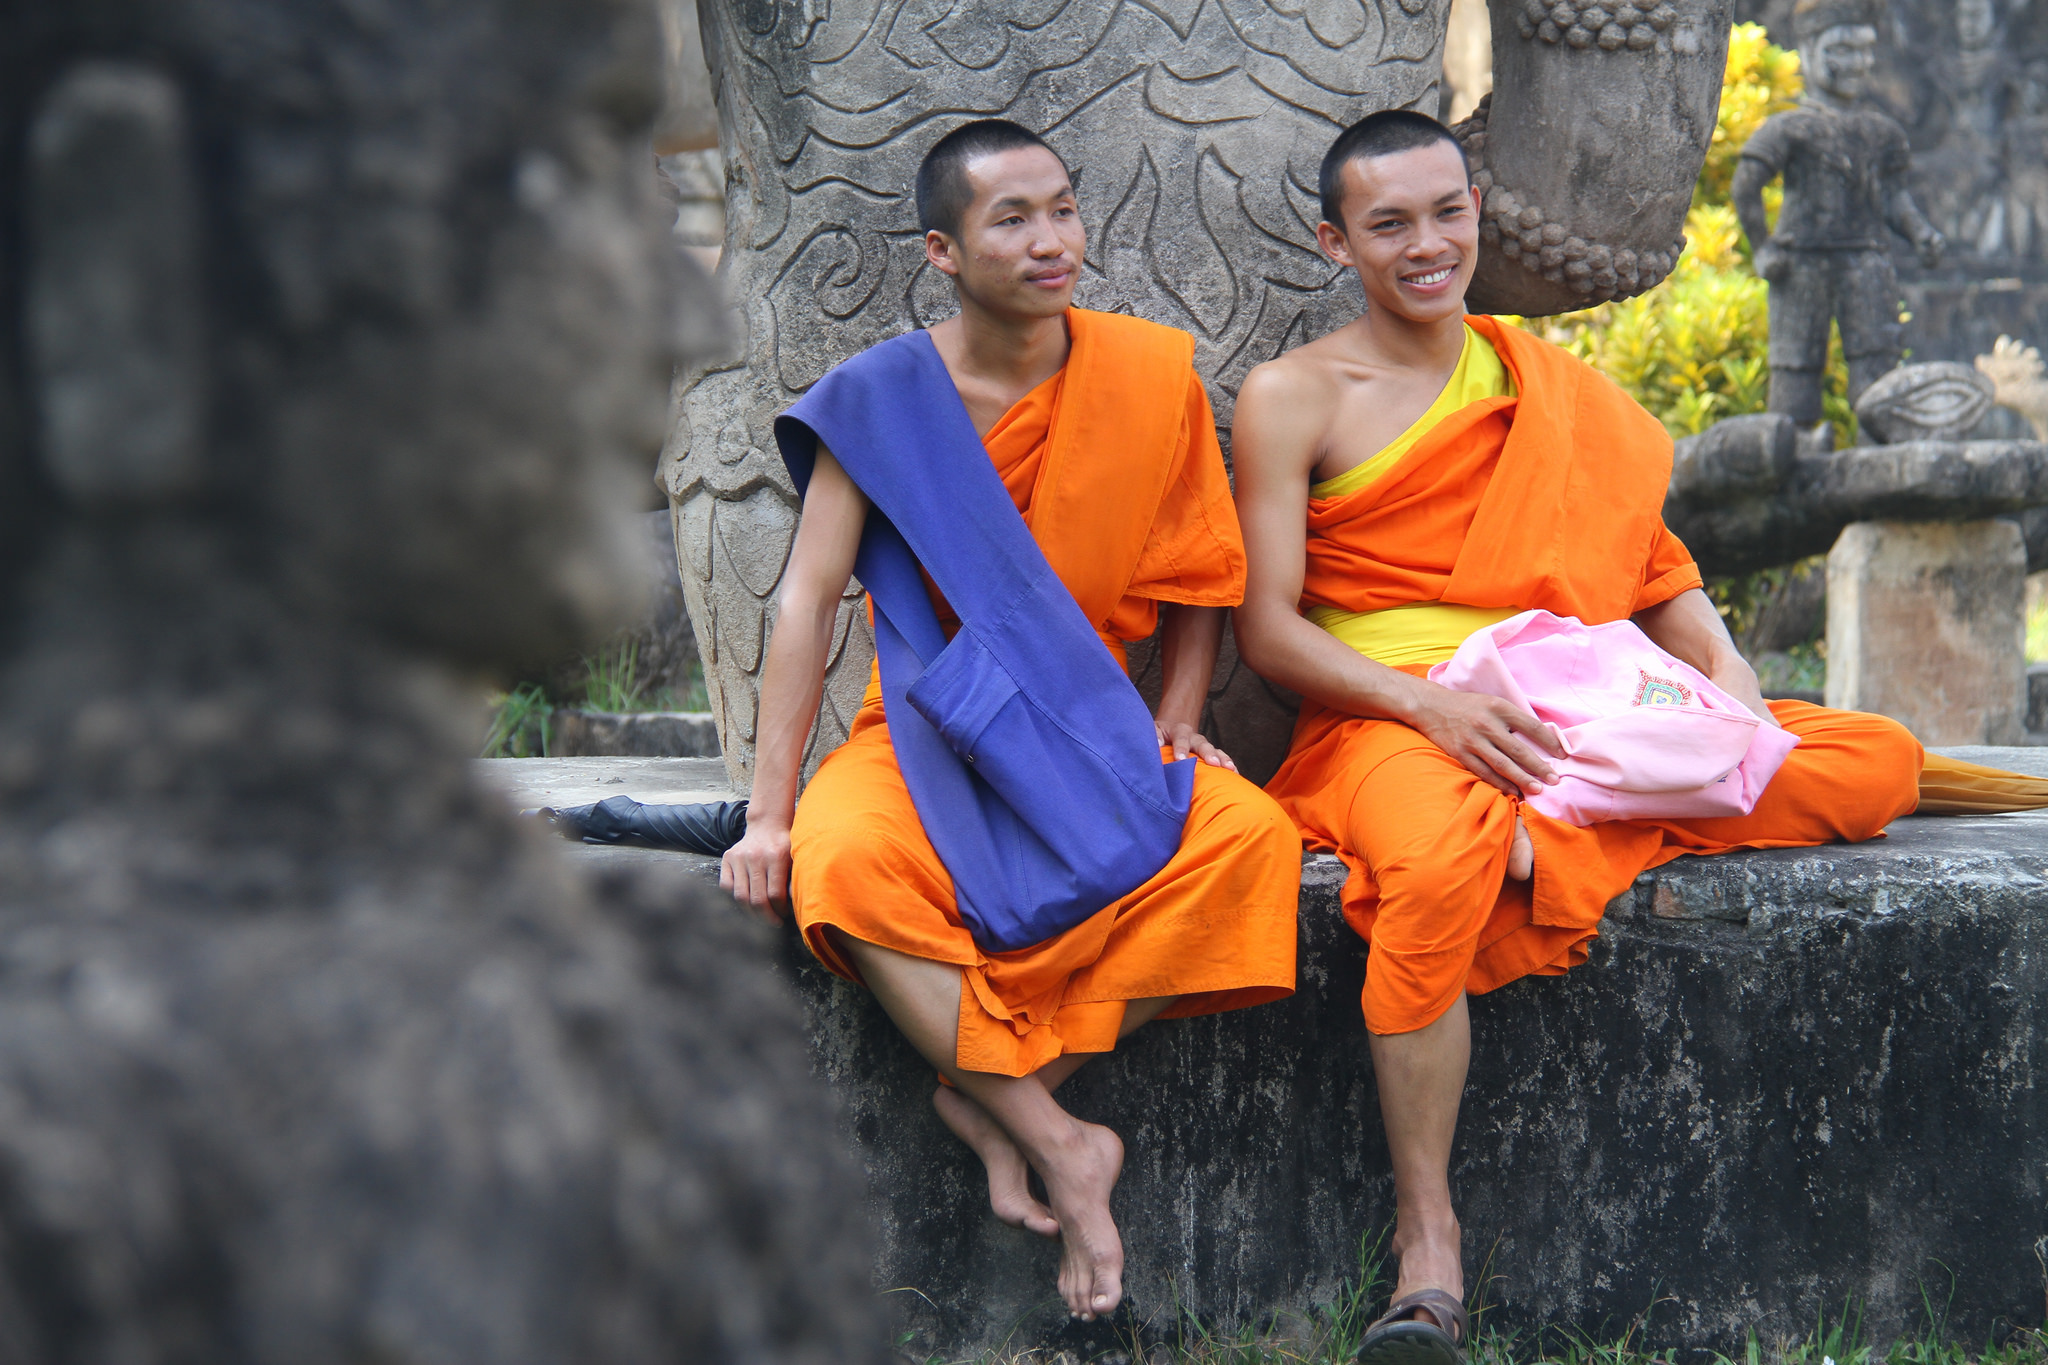 eaton park buddhist singles Find something brilliant, or someone brilliant eaton park is a lonely place without love check out other eaton park singles here afroromance offers an online dating experience like no other, in that we make the initial sign up process completely free.